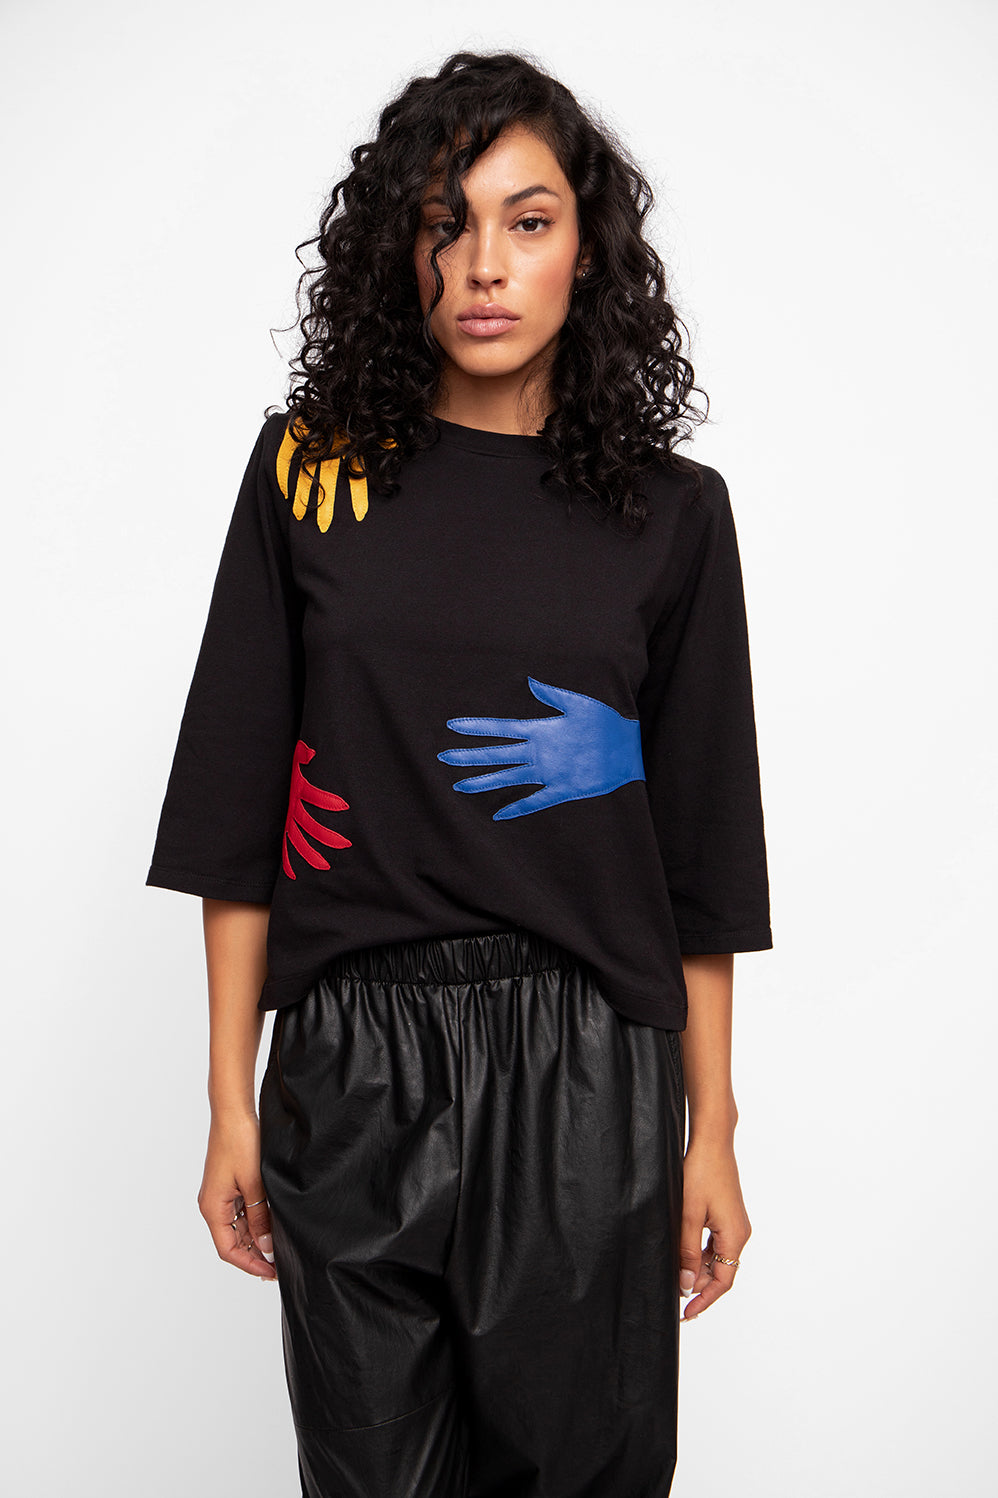 JUST IN: Handsy Tee